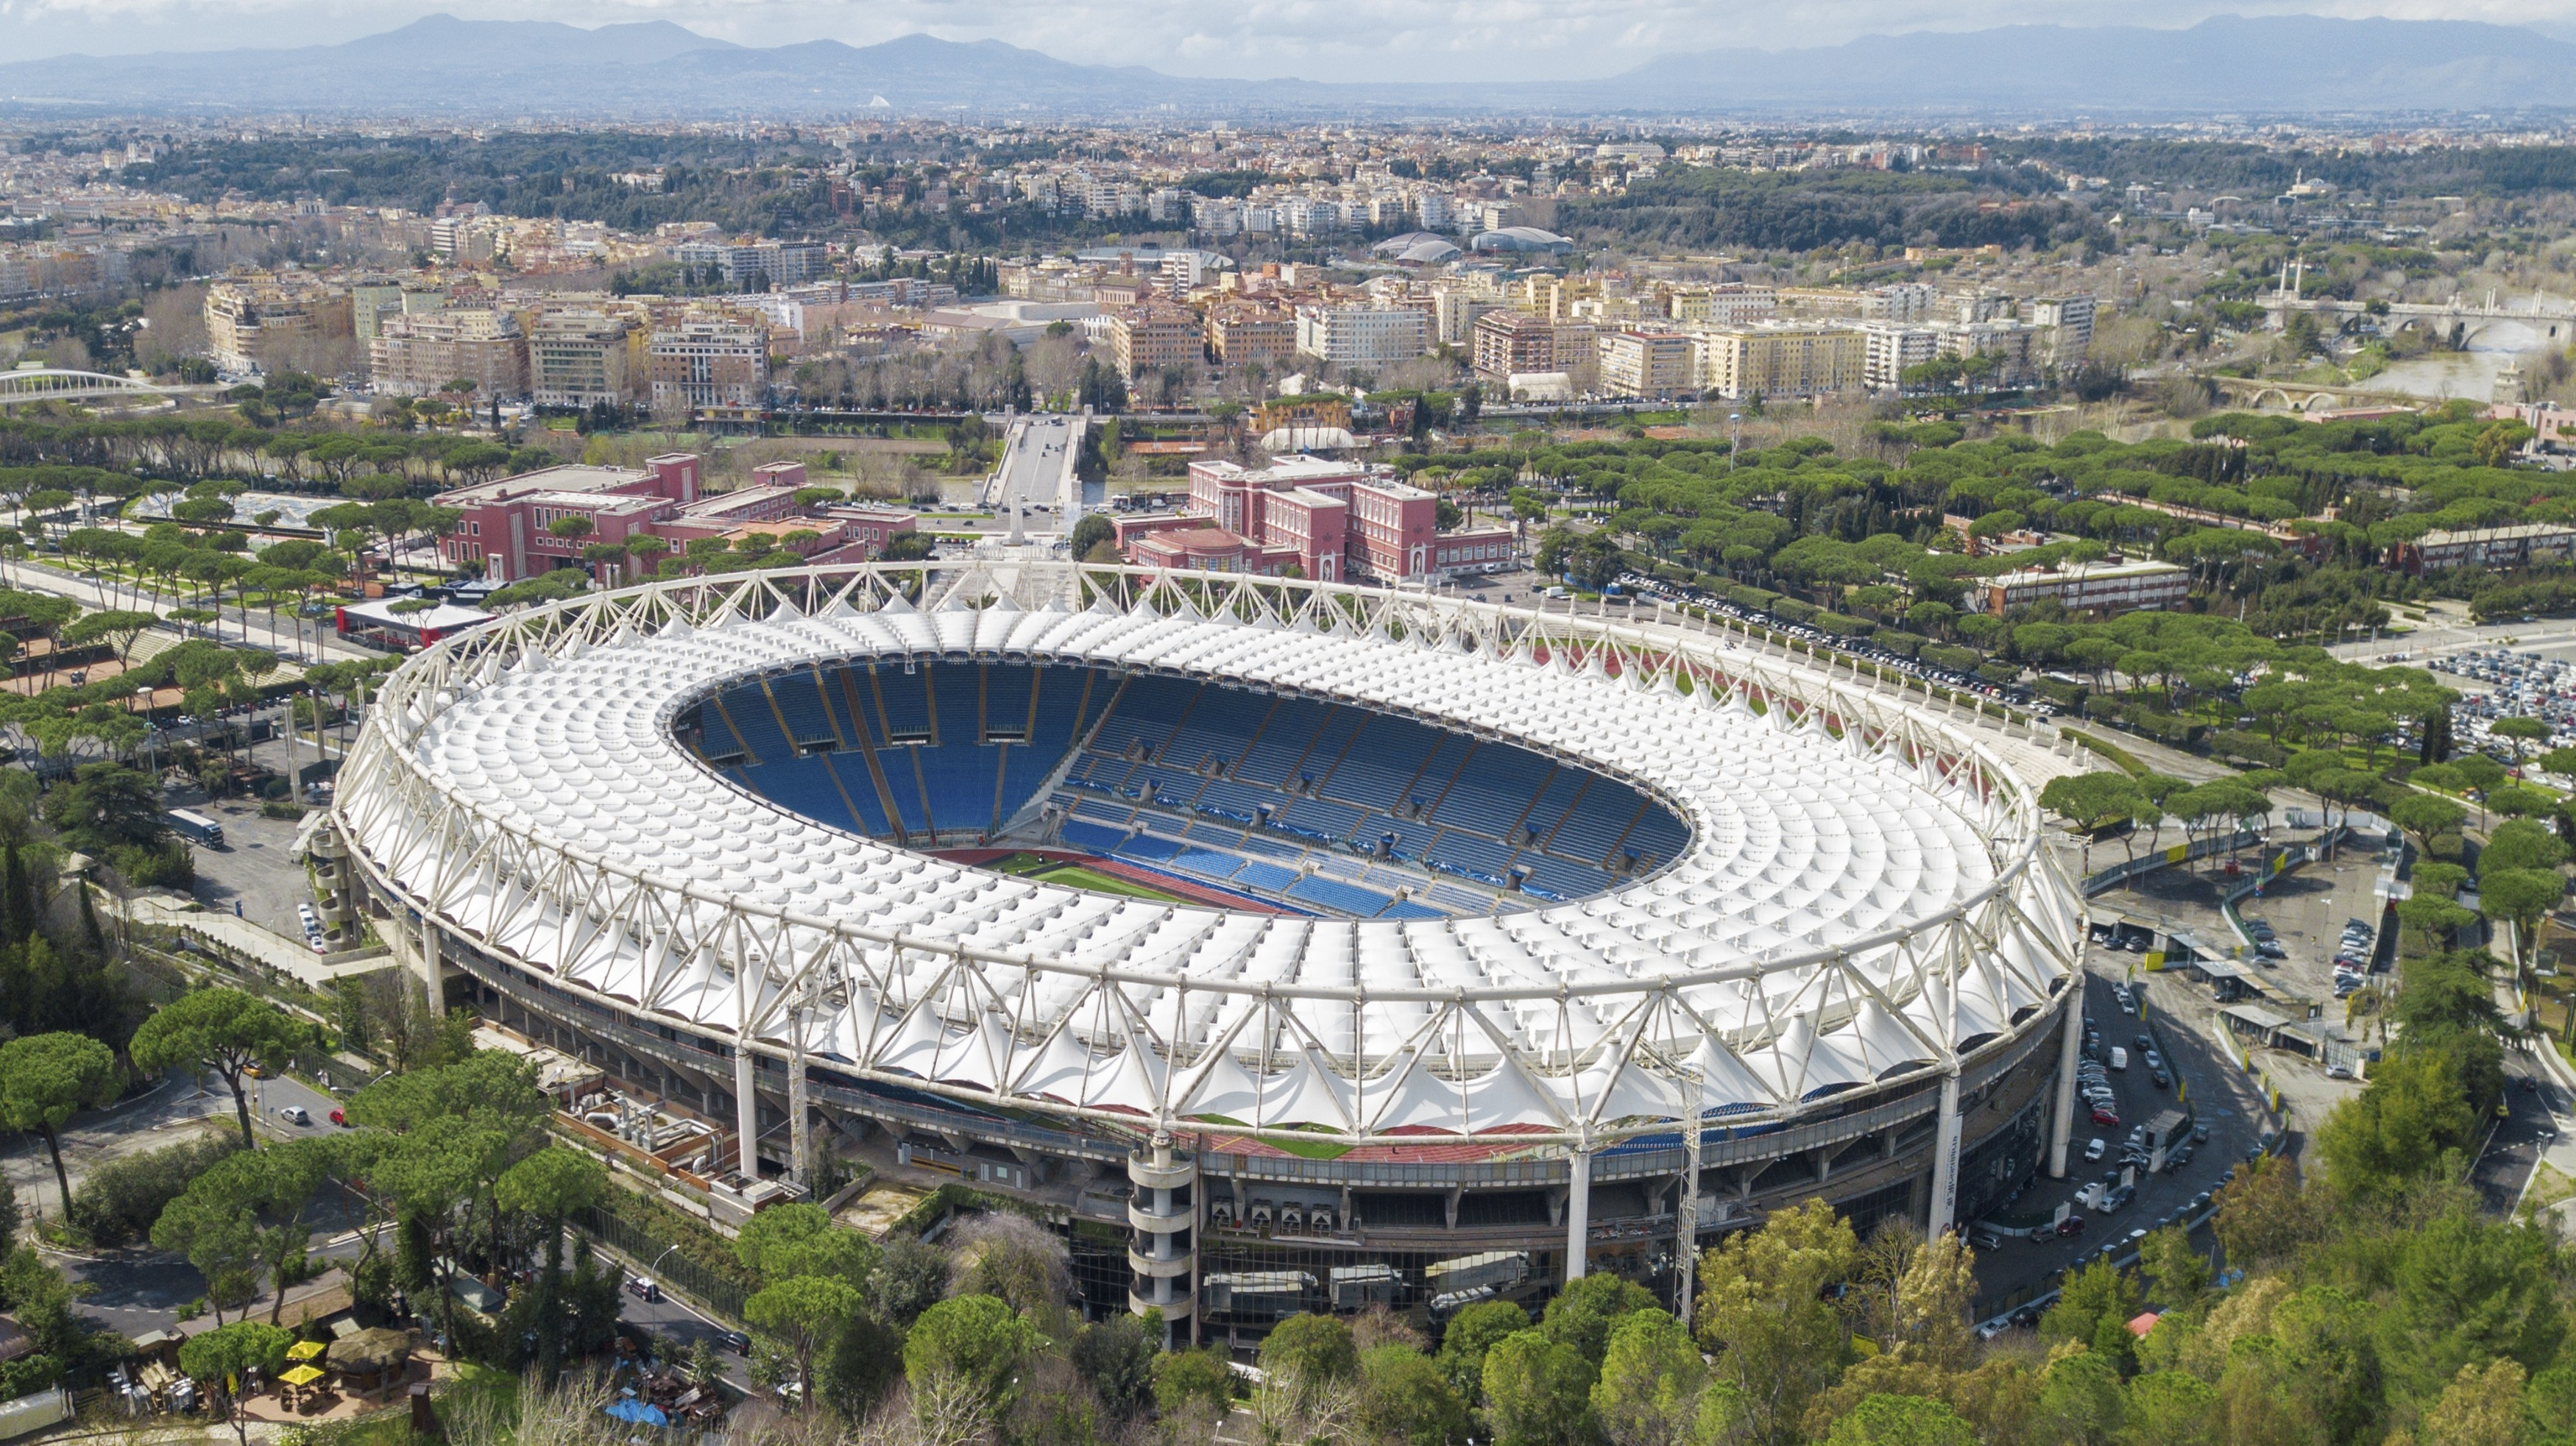 Aerial view of the Olympic Stadium in Rome, Italy. On this field are played the matches of Serie A of Rome, Lazio and matches of the Italian national team of football and rugby.